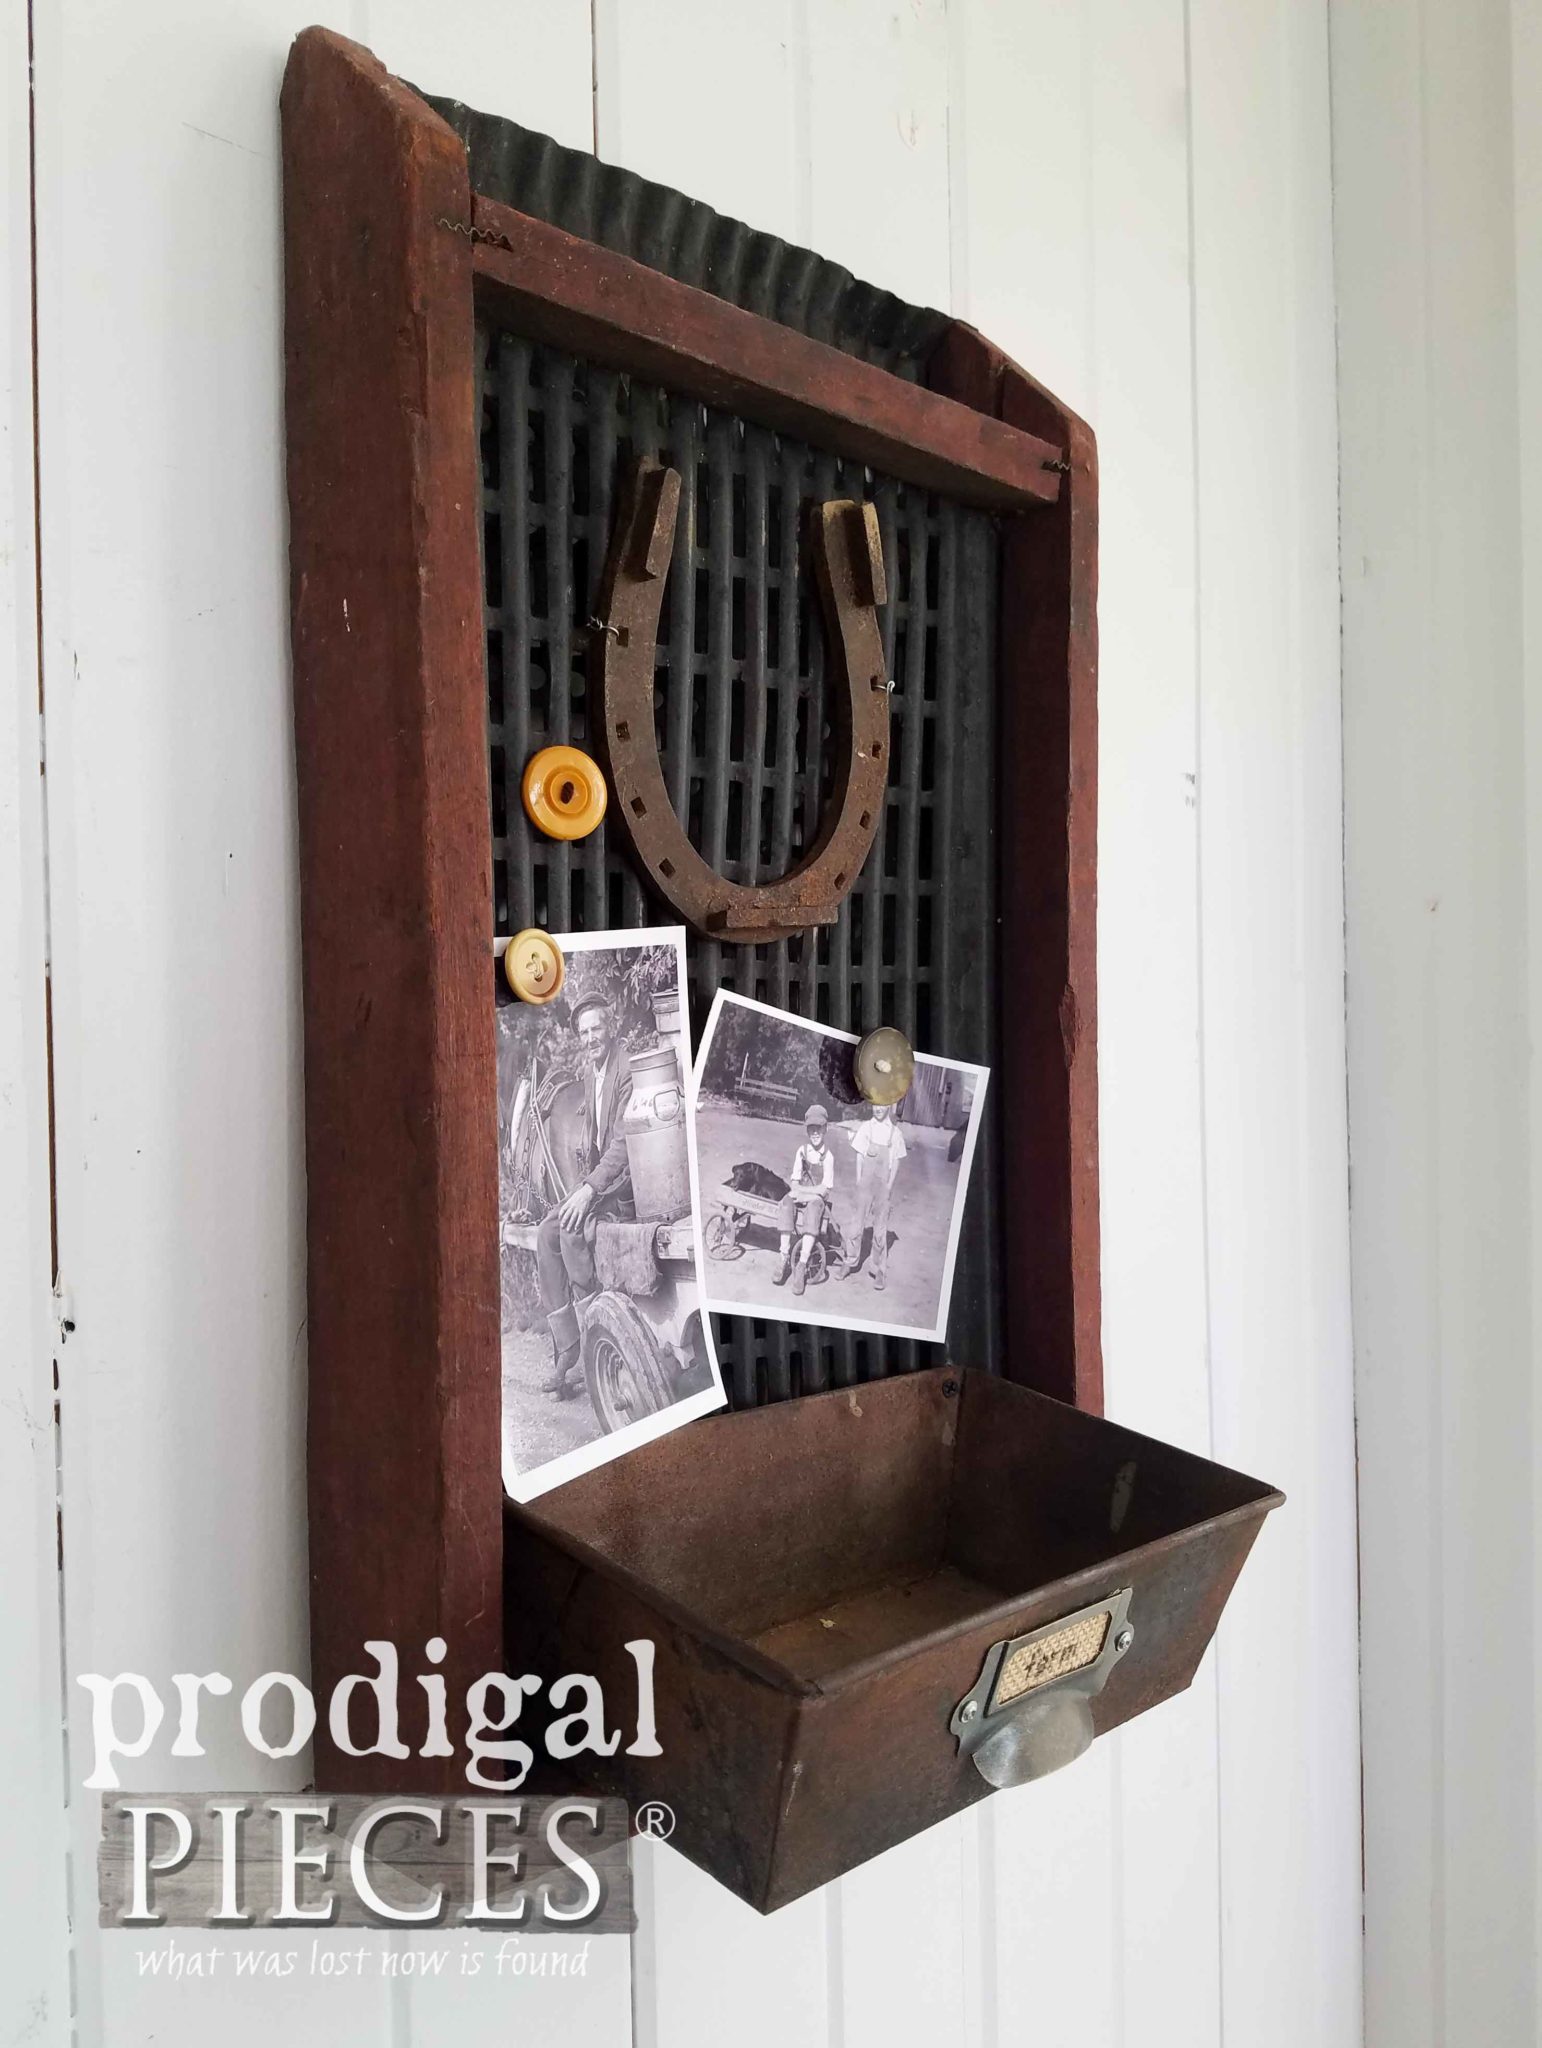 Upcycled Farmhouse Corn Sifter Turned Message Center | prodigalpieces.com